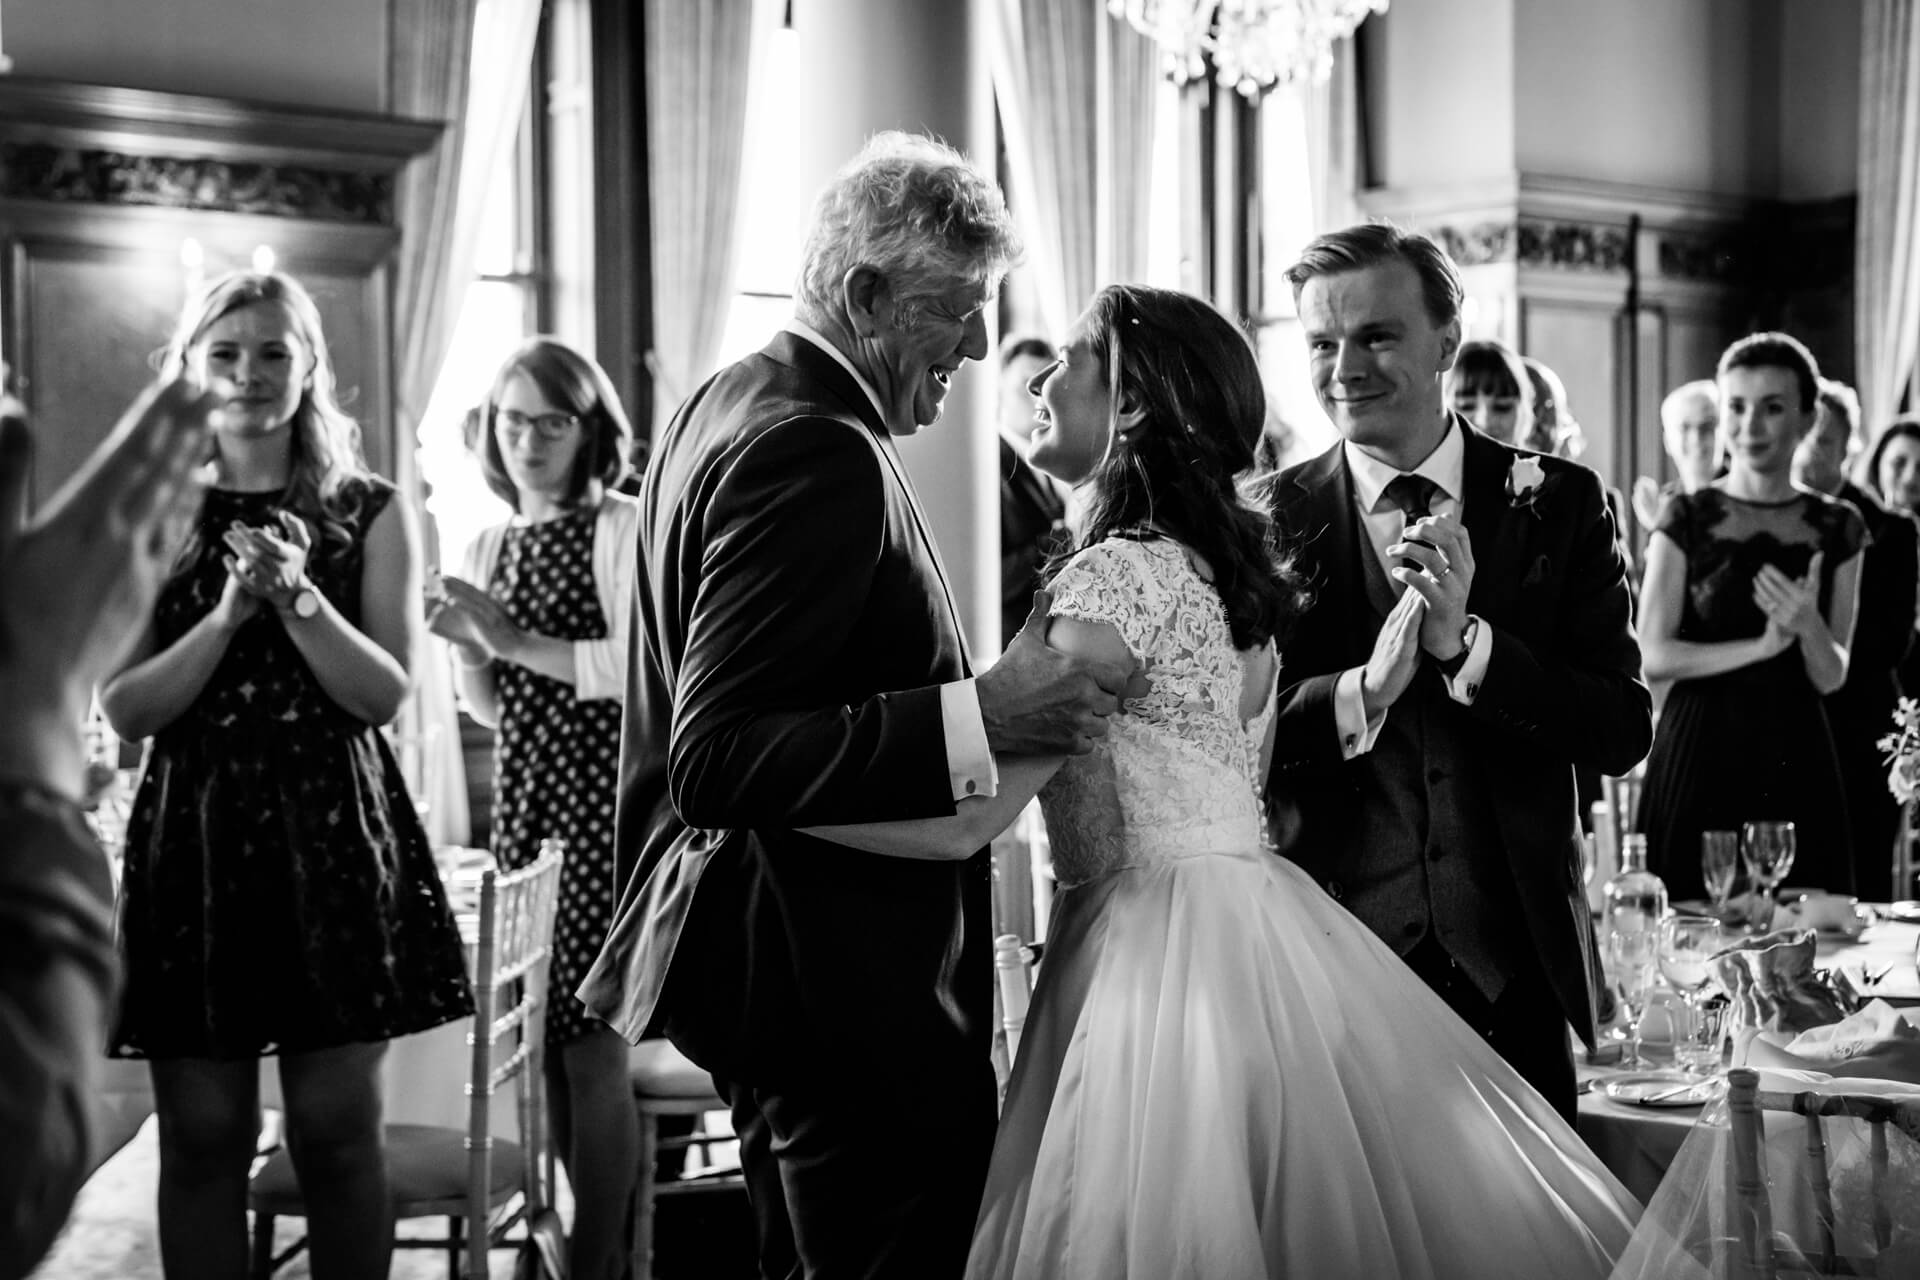 bride and her father laughing together as all the wedding guests clap